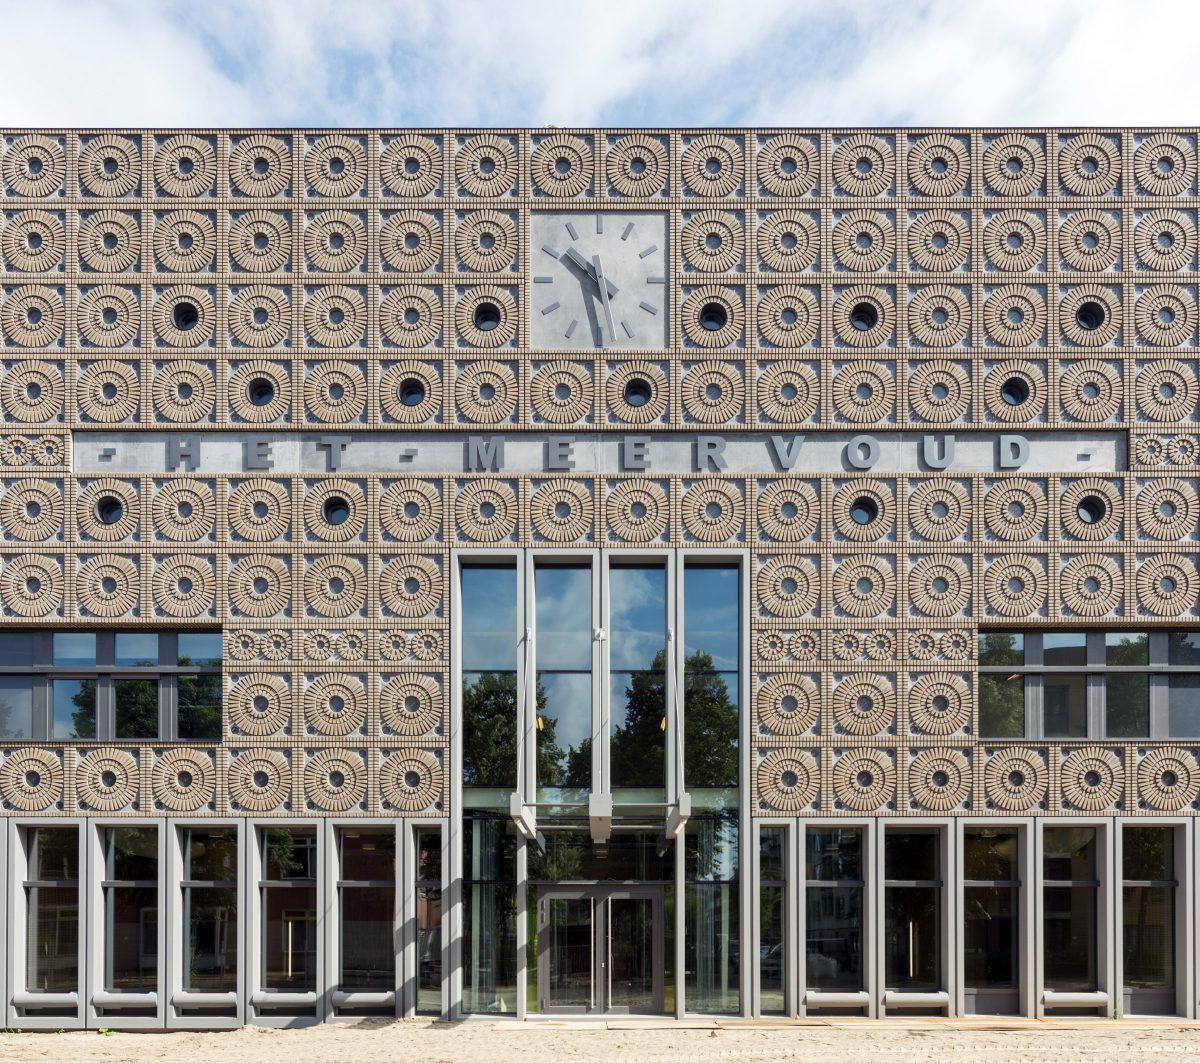 Marlies Rohmer, Community school, Het Meervoud, primary education, gymnasium, grandstand stairs, children's drawings, clock, masonry pattern, prefab, ornament, benches